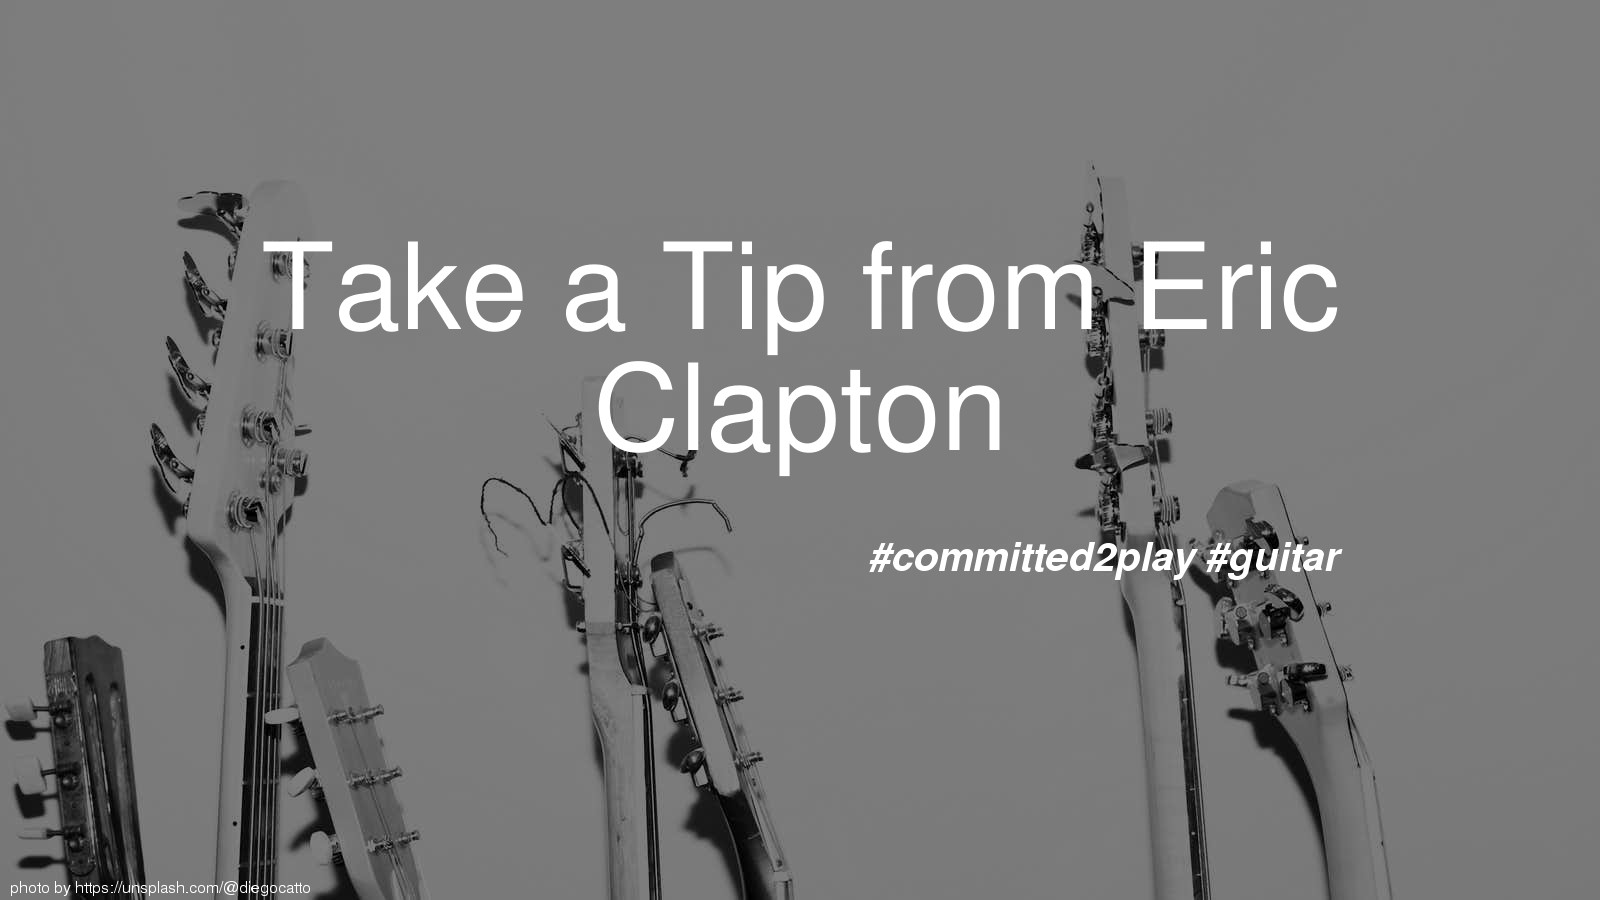 Take a Tip from Eric Clapton